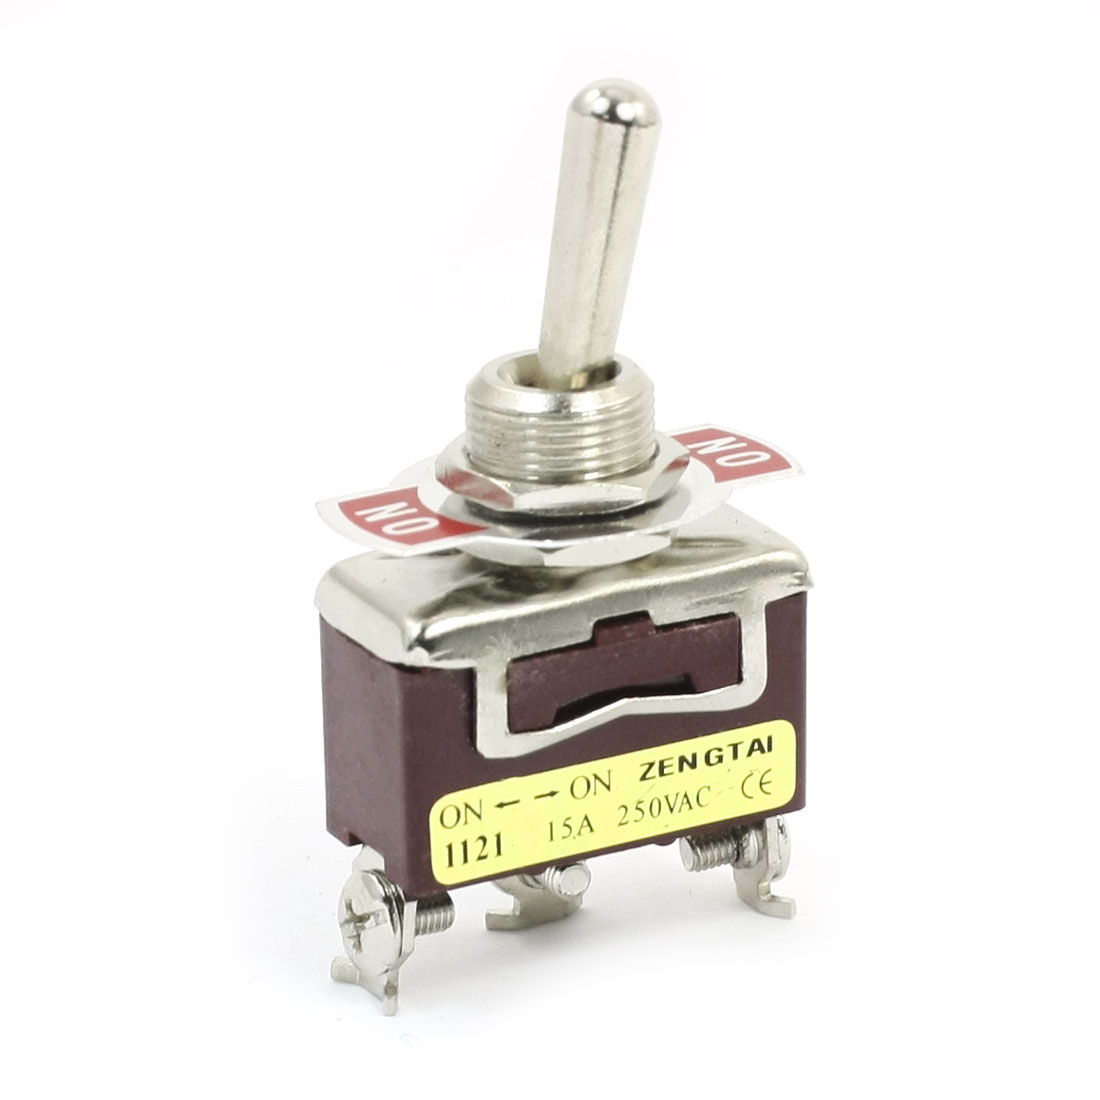 AC 250V 15A SPDT ON-ON 2 Positions Latching Power Toggle Switch E-TEN1121